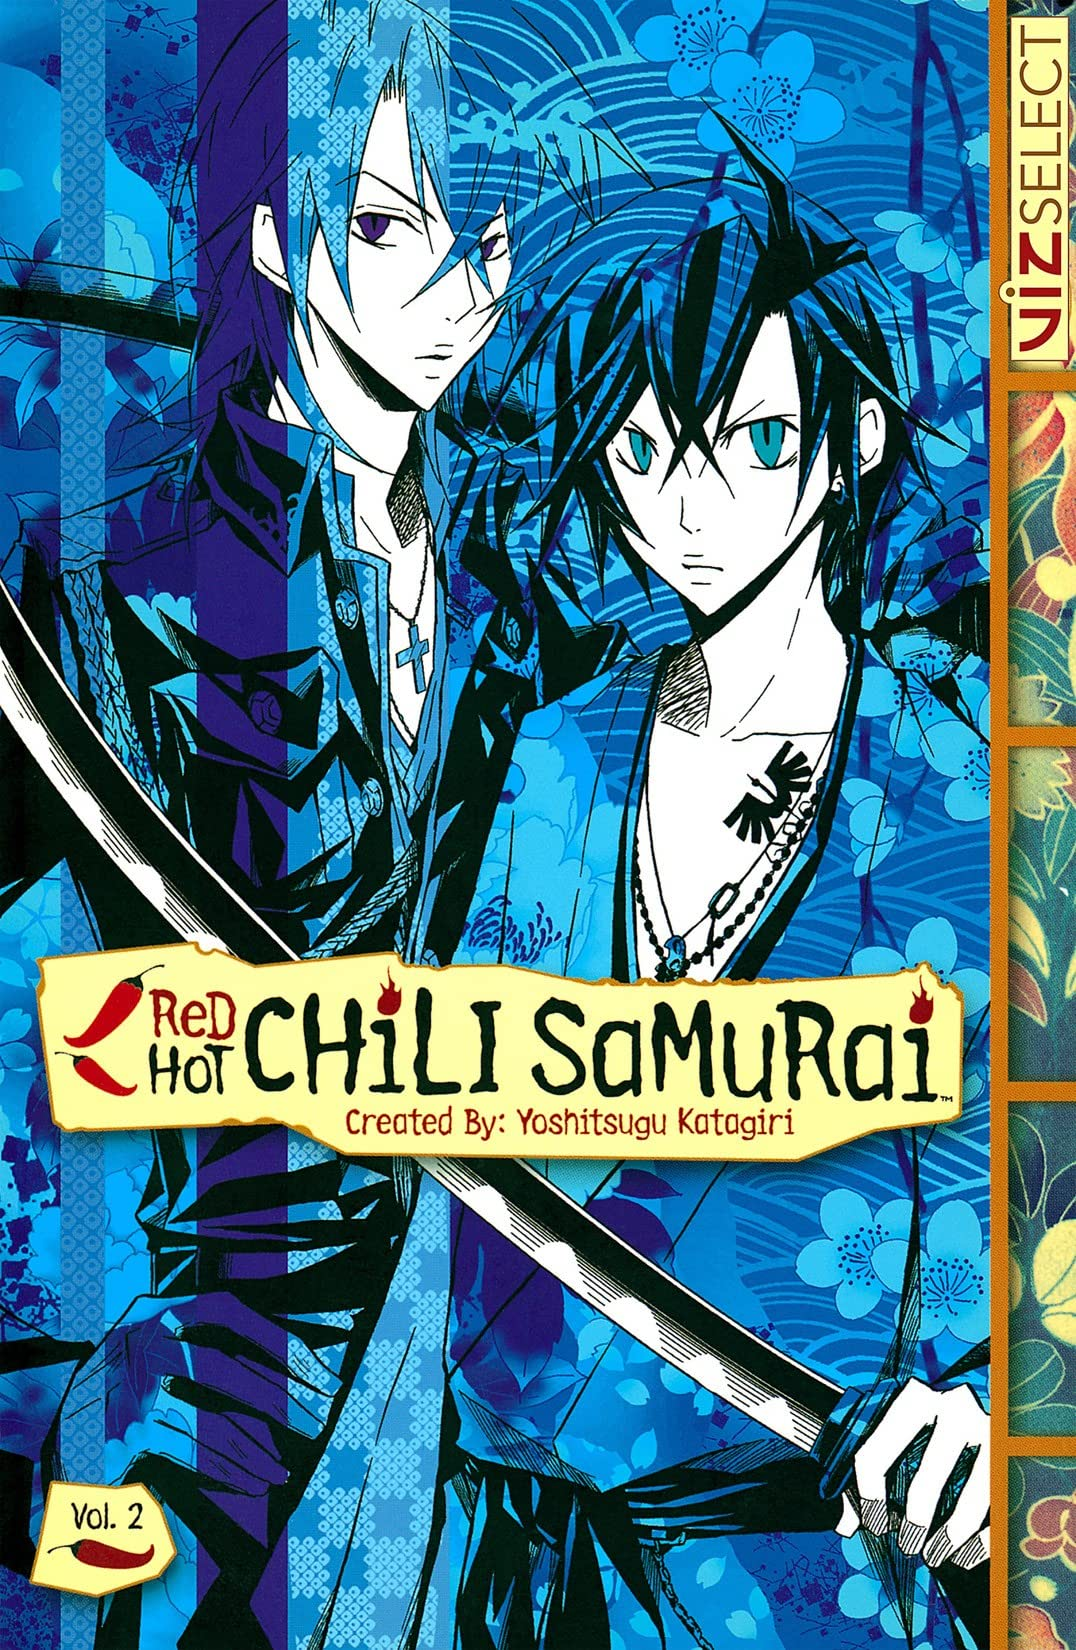 Red Hot Chili Samurai Vol. 2